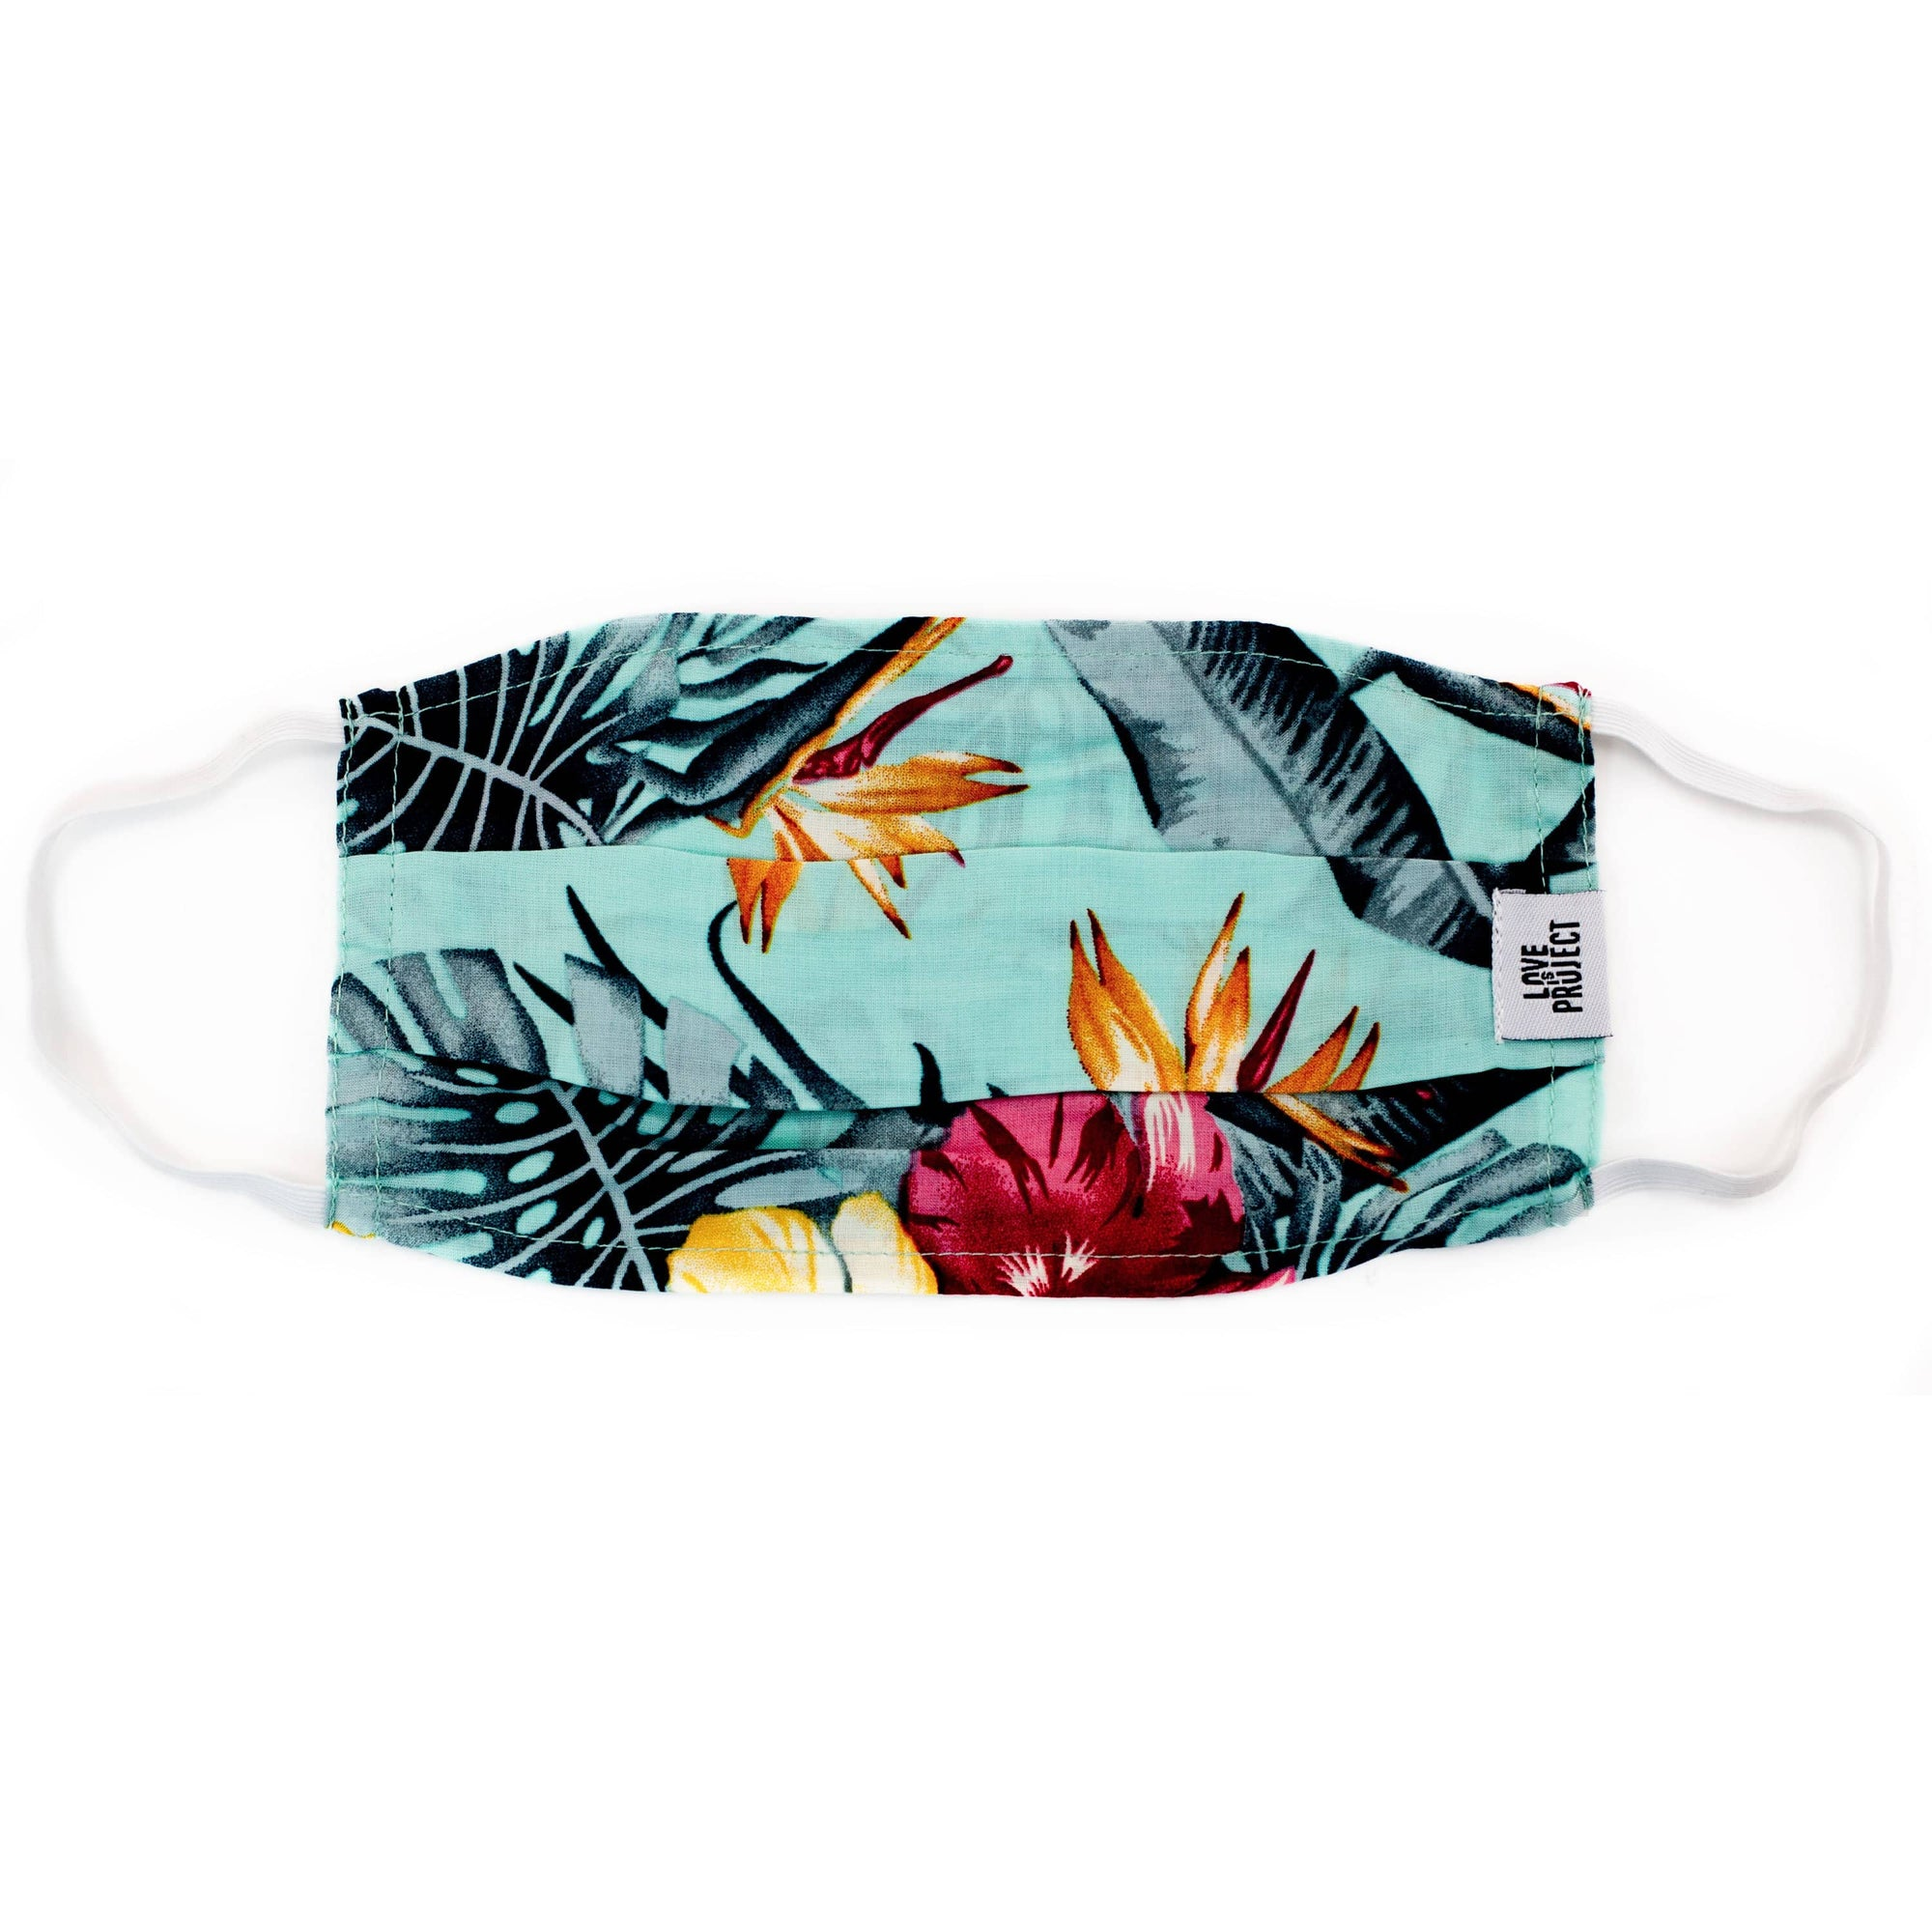 Aloha Elastic Face Mask - Sea Foam